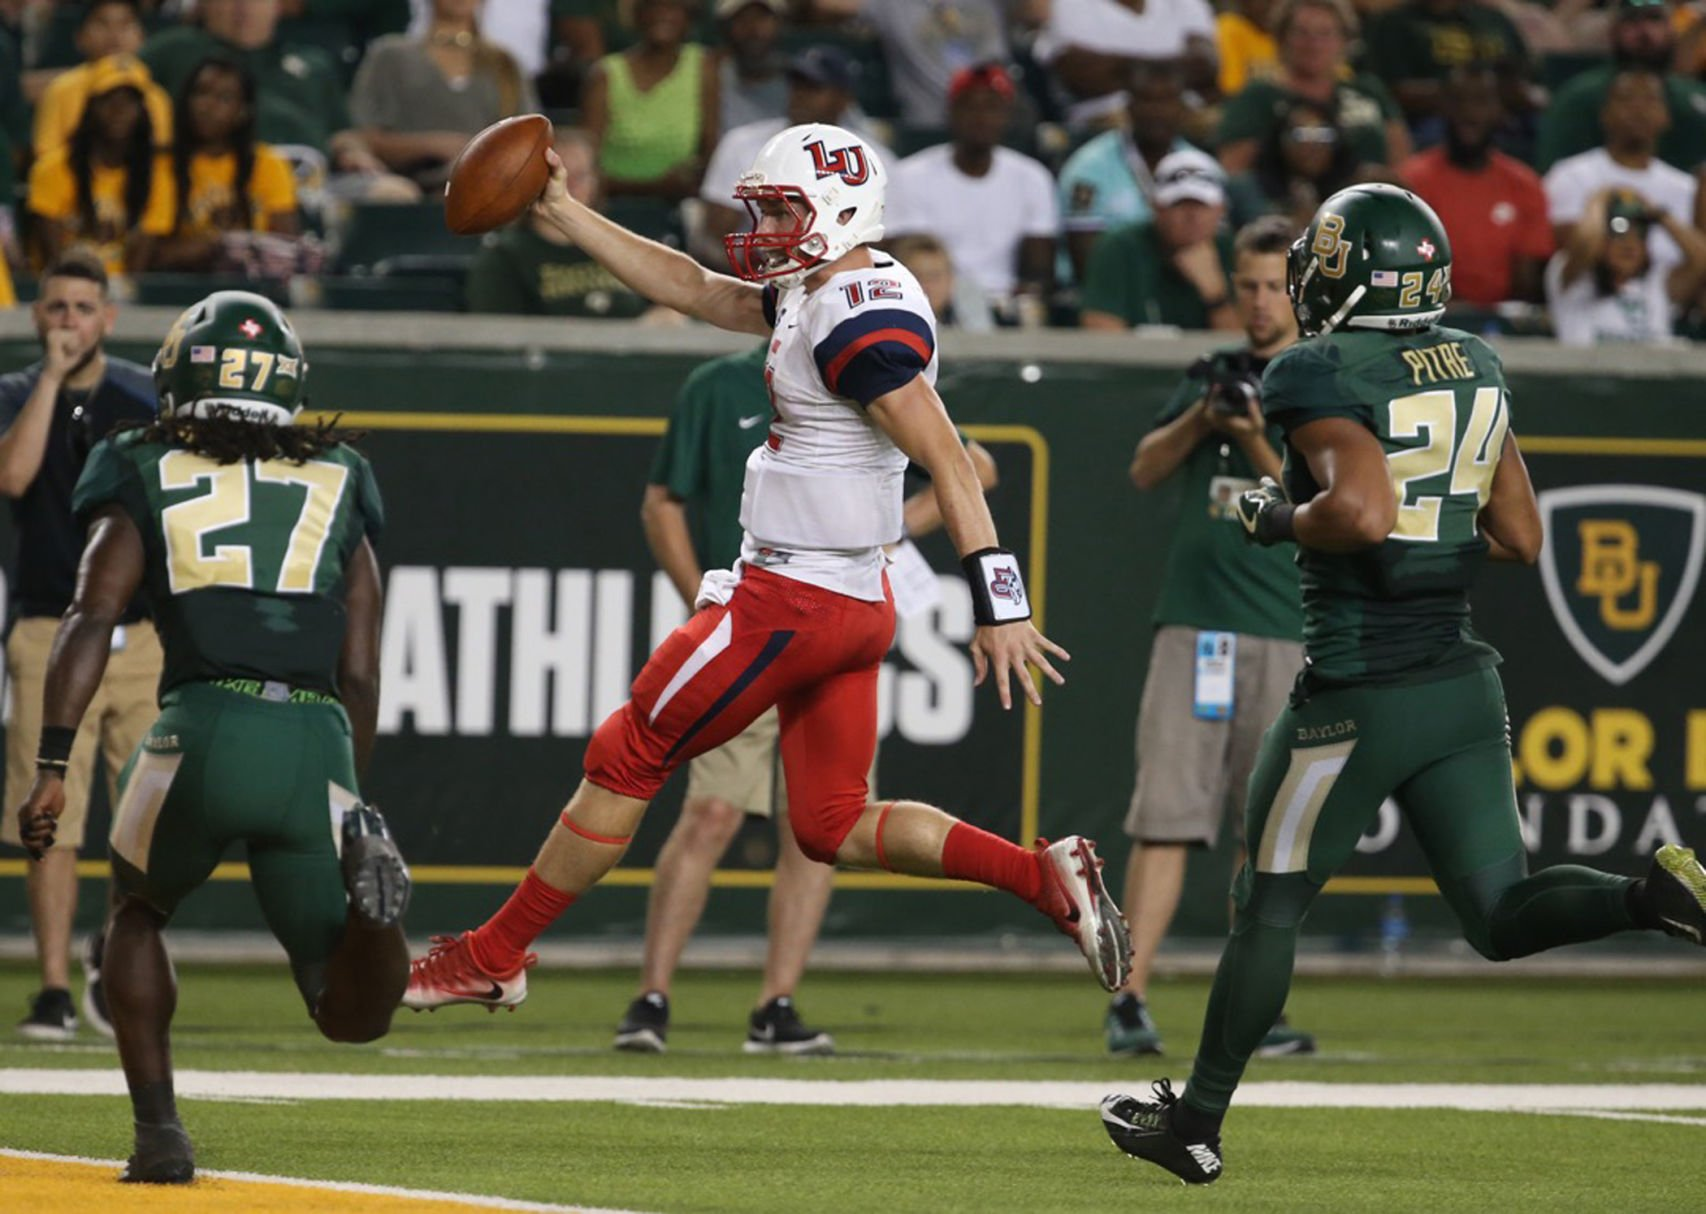 Liberty Stuns Baylor for First-Ever Power-5 Win